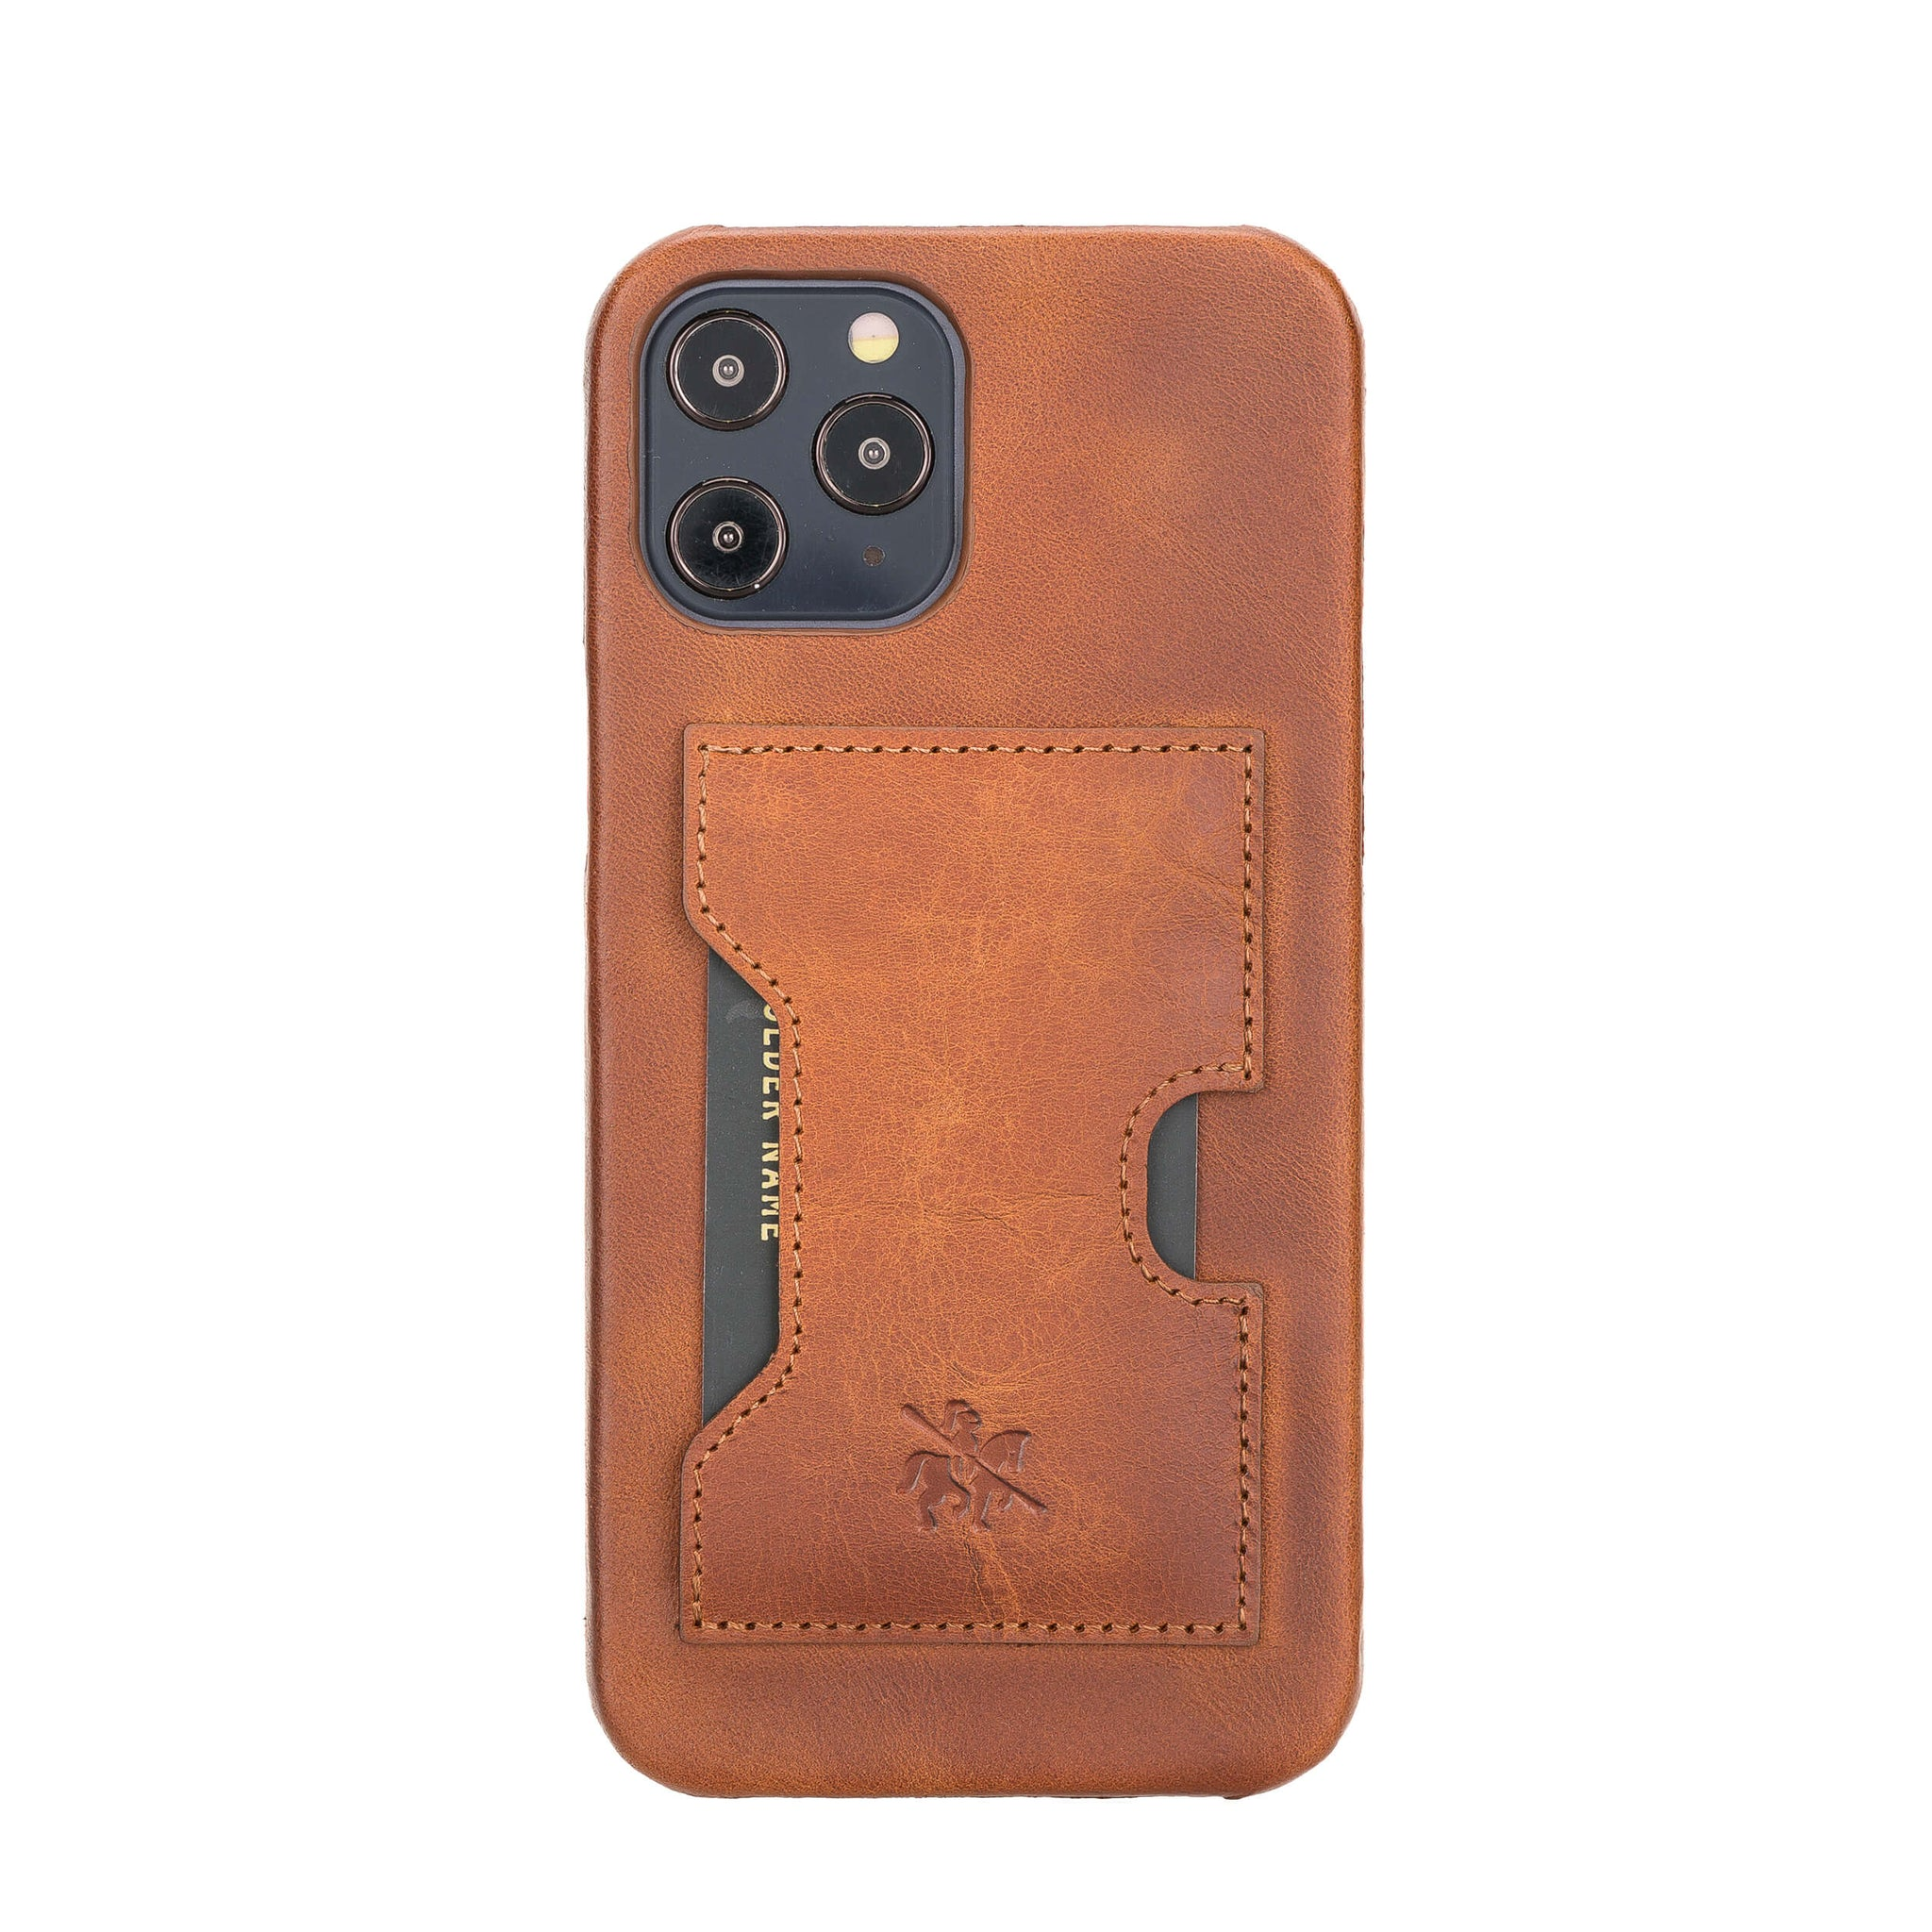 5.4 Free Shipping Iphone 12 Mini Antic Brown Detachable Wallet Case